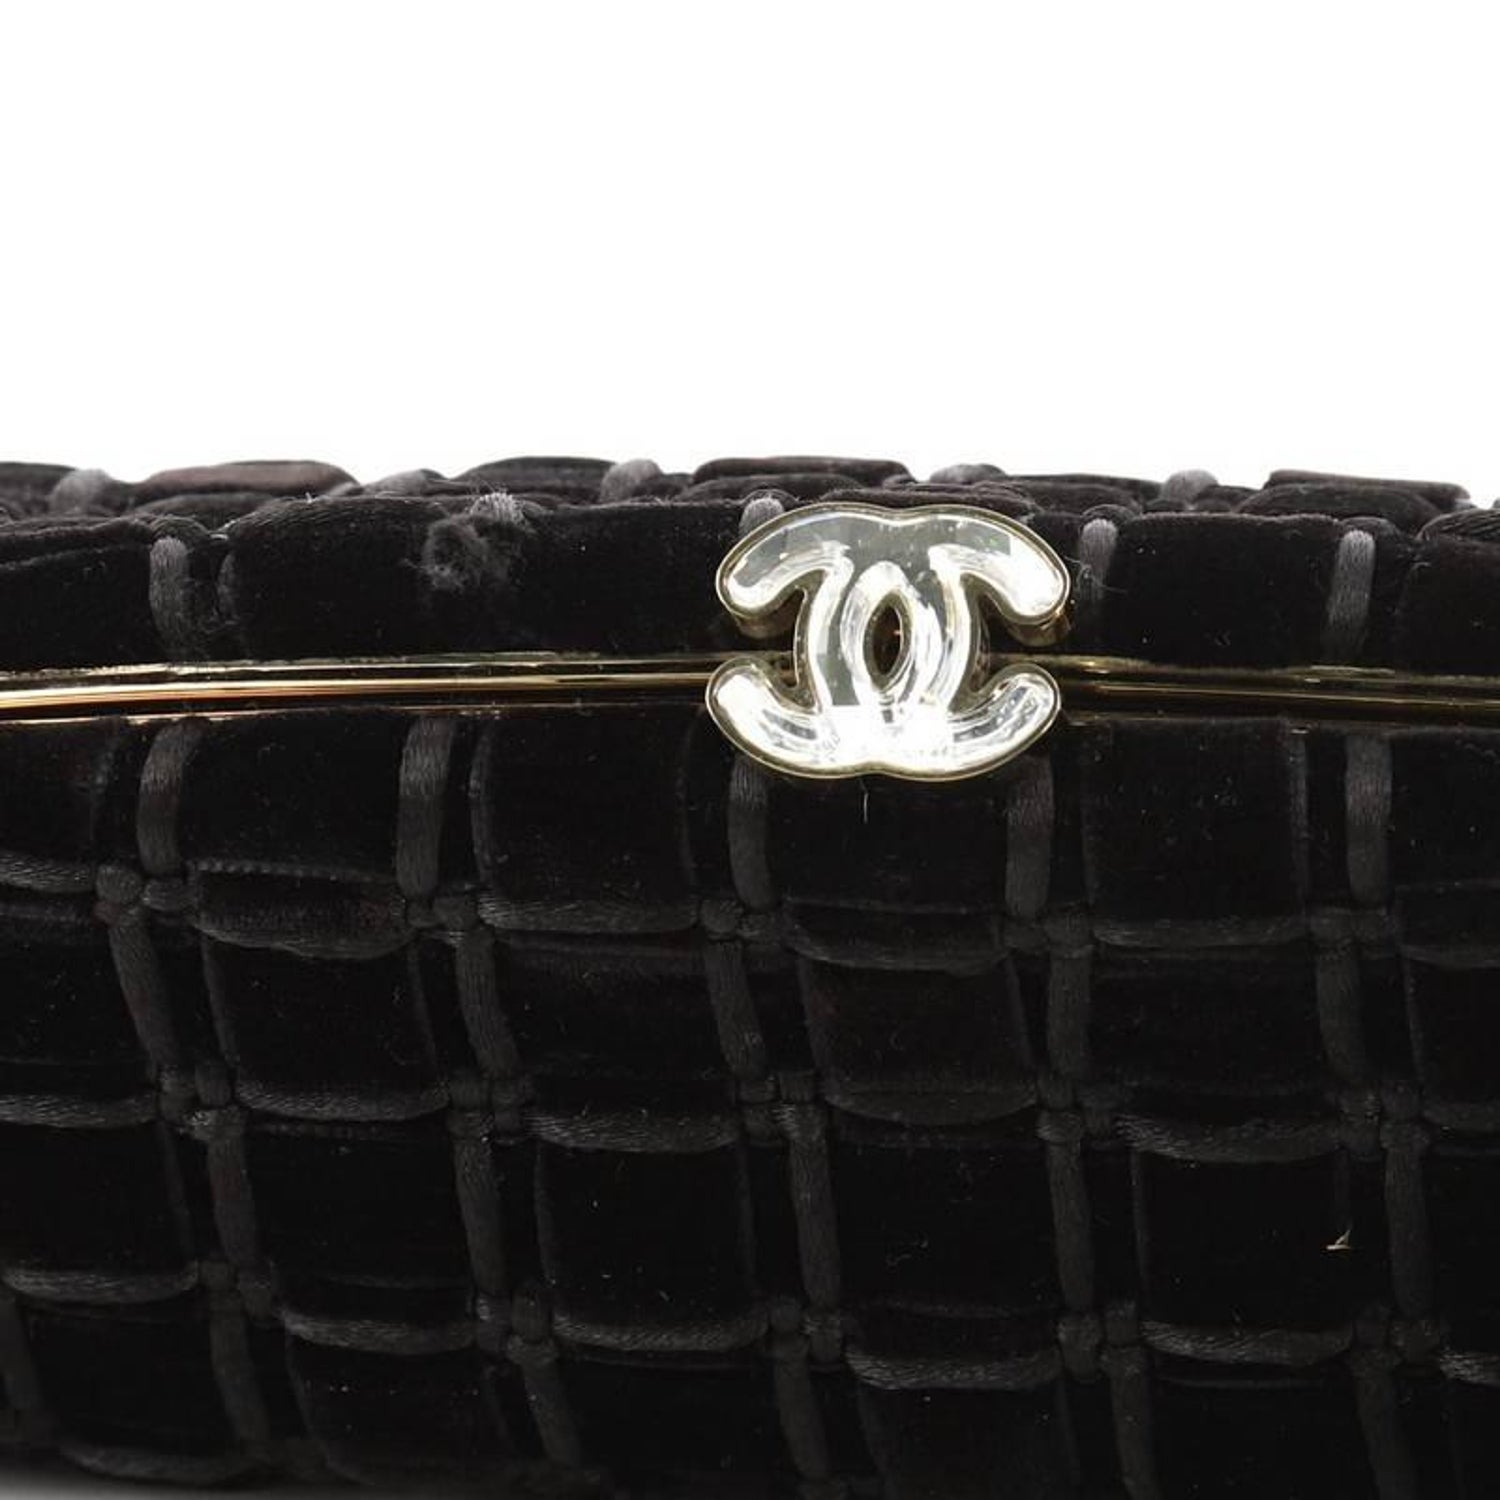 795c9e8659e6 Chanel Timeless Clutch Velvet with Woven Leather at 1stdibs